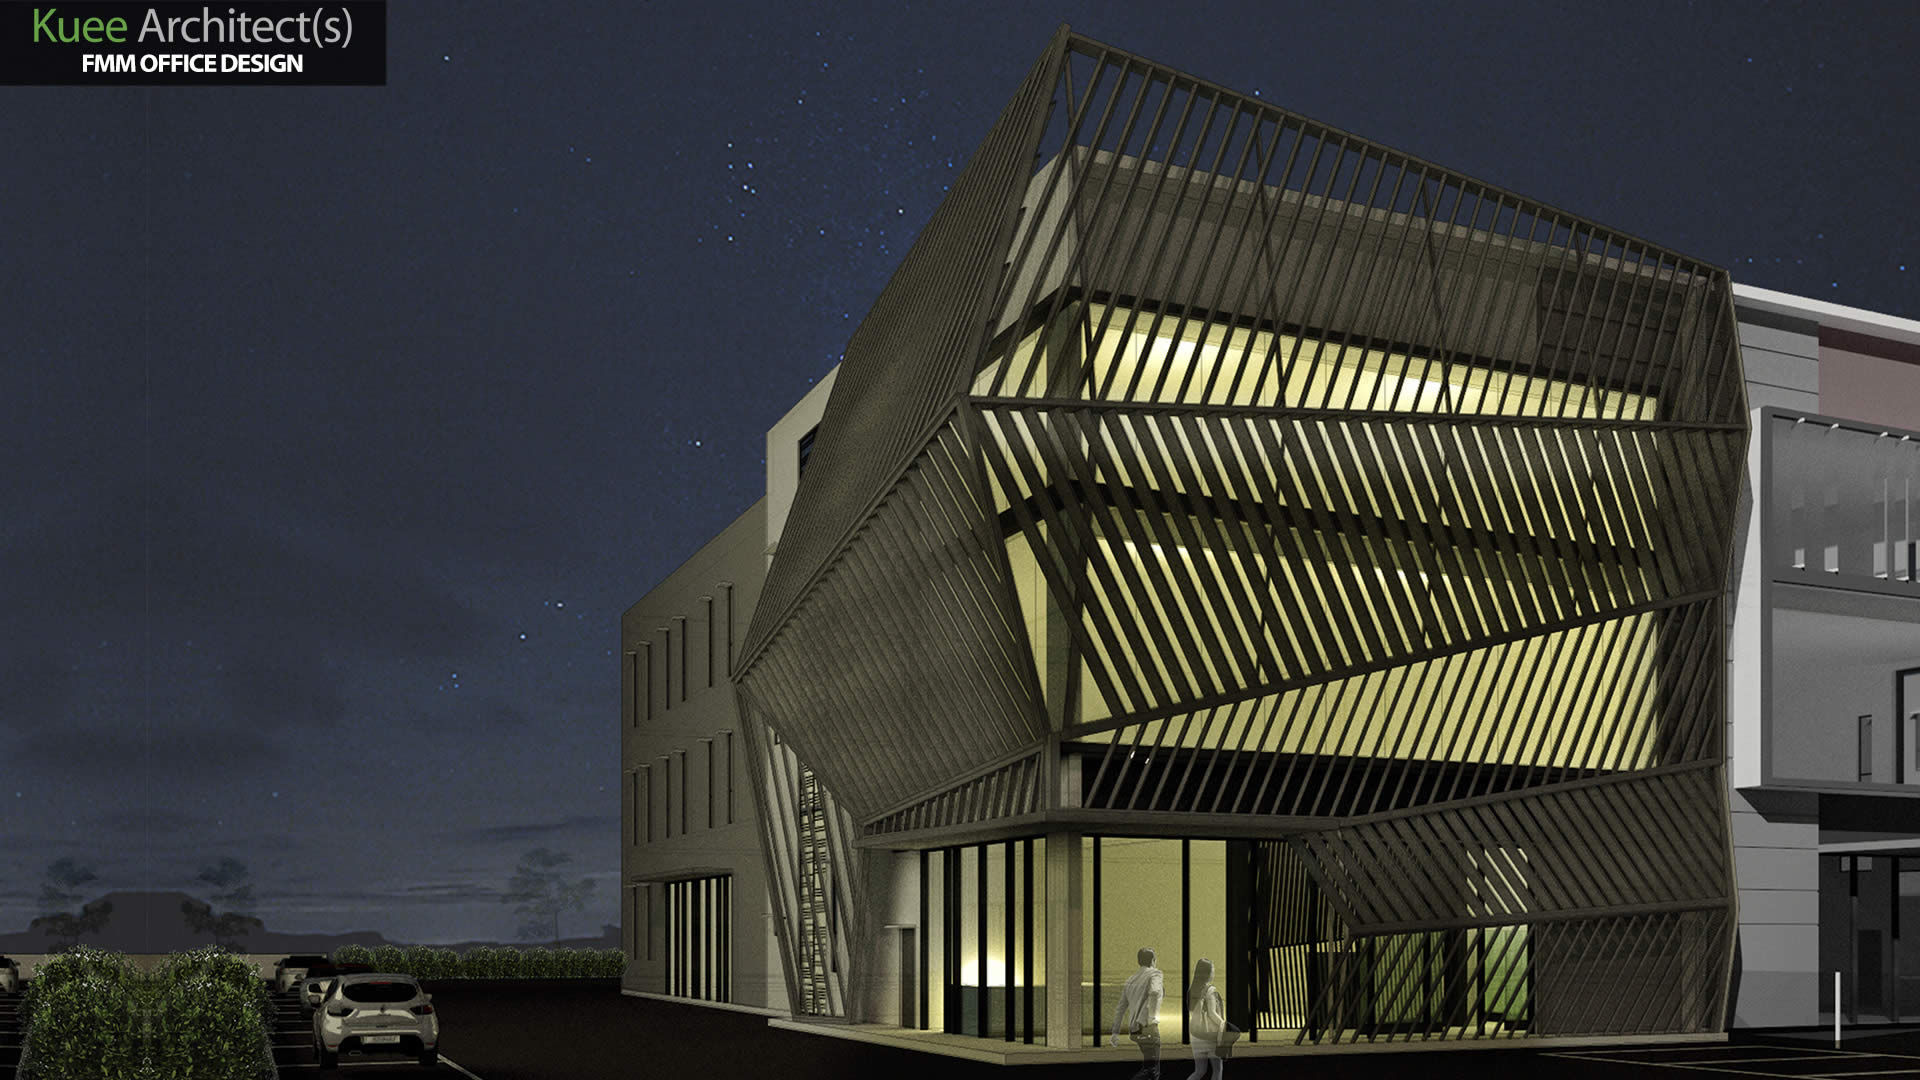 Night view Commercial office architecture design-FMM in Selangor Kuee Architect